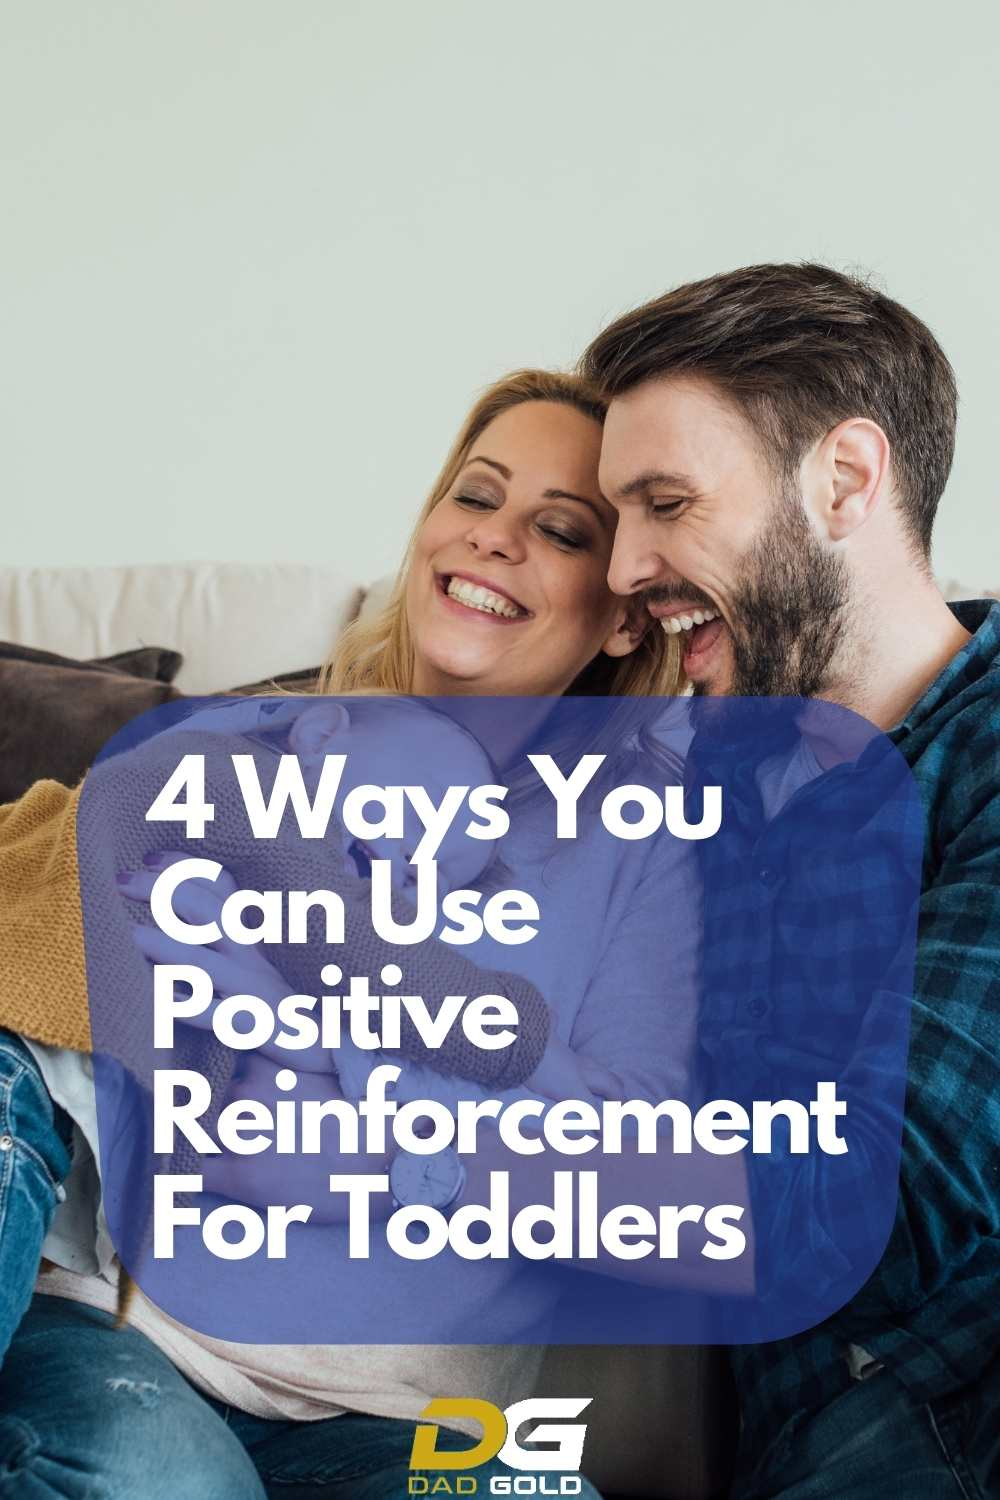 4 Ways You Can Use Positive Reinforcement For Toddlers